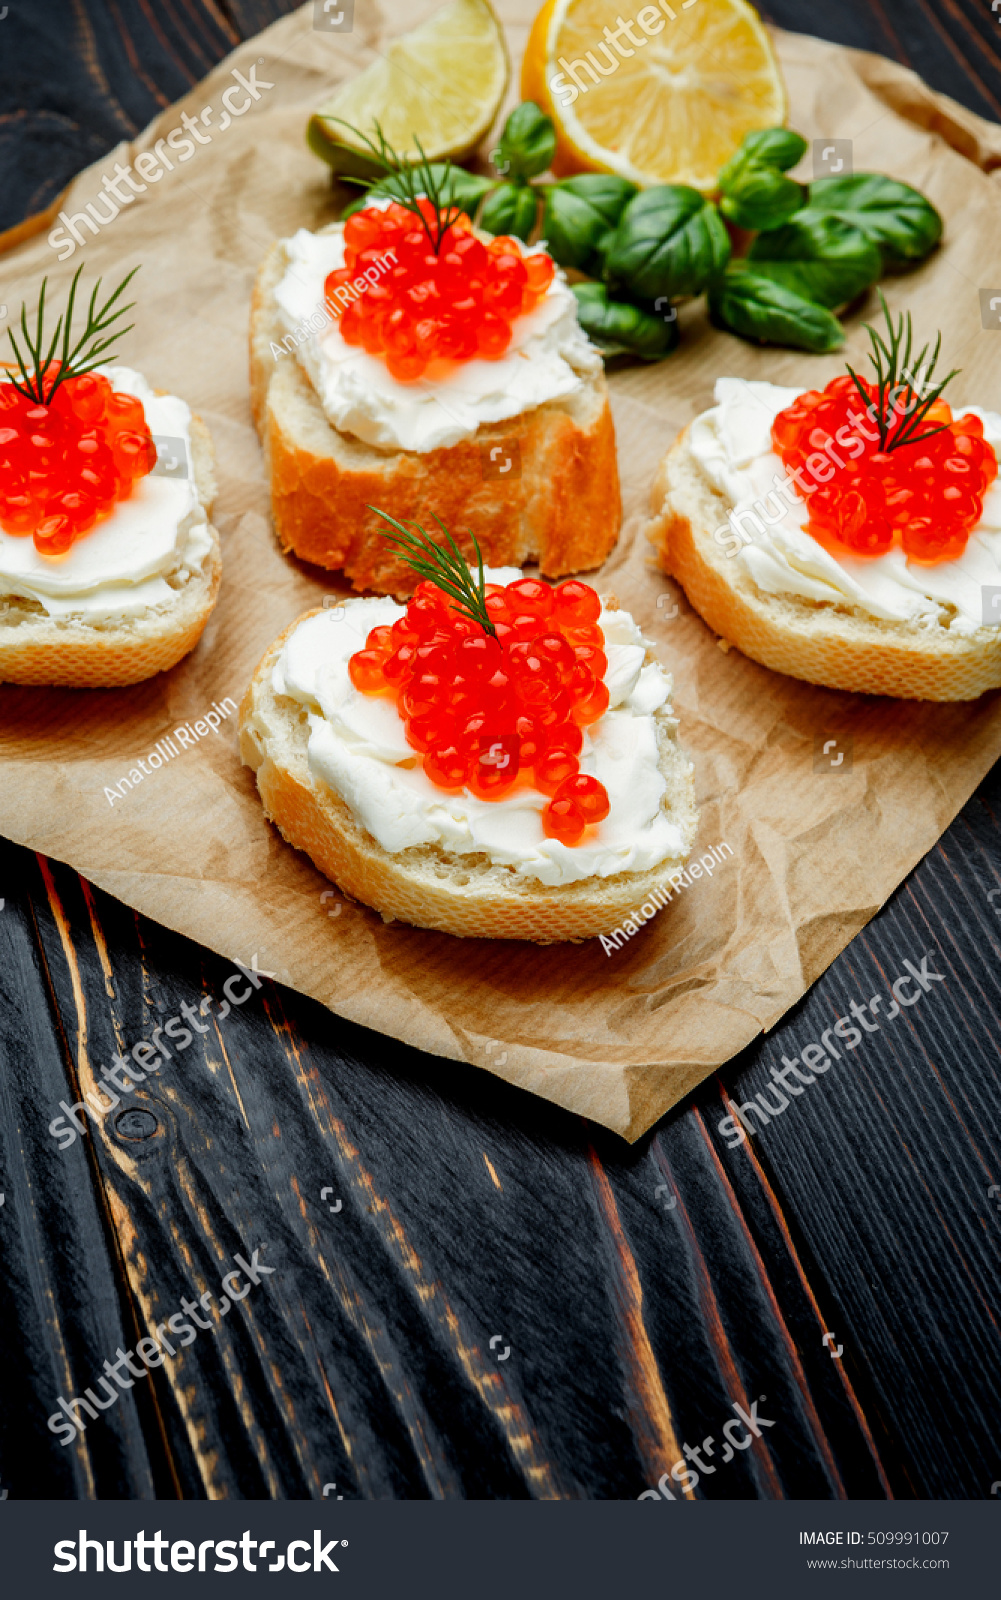 Canapes red caviar stock photo 509991007 shutterstock for Canape with caviar